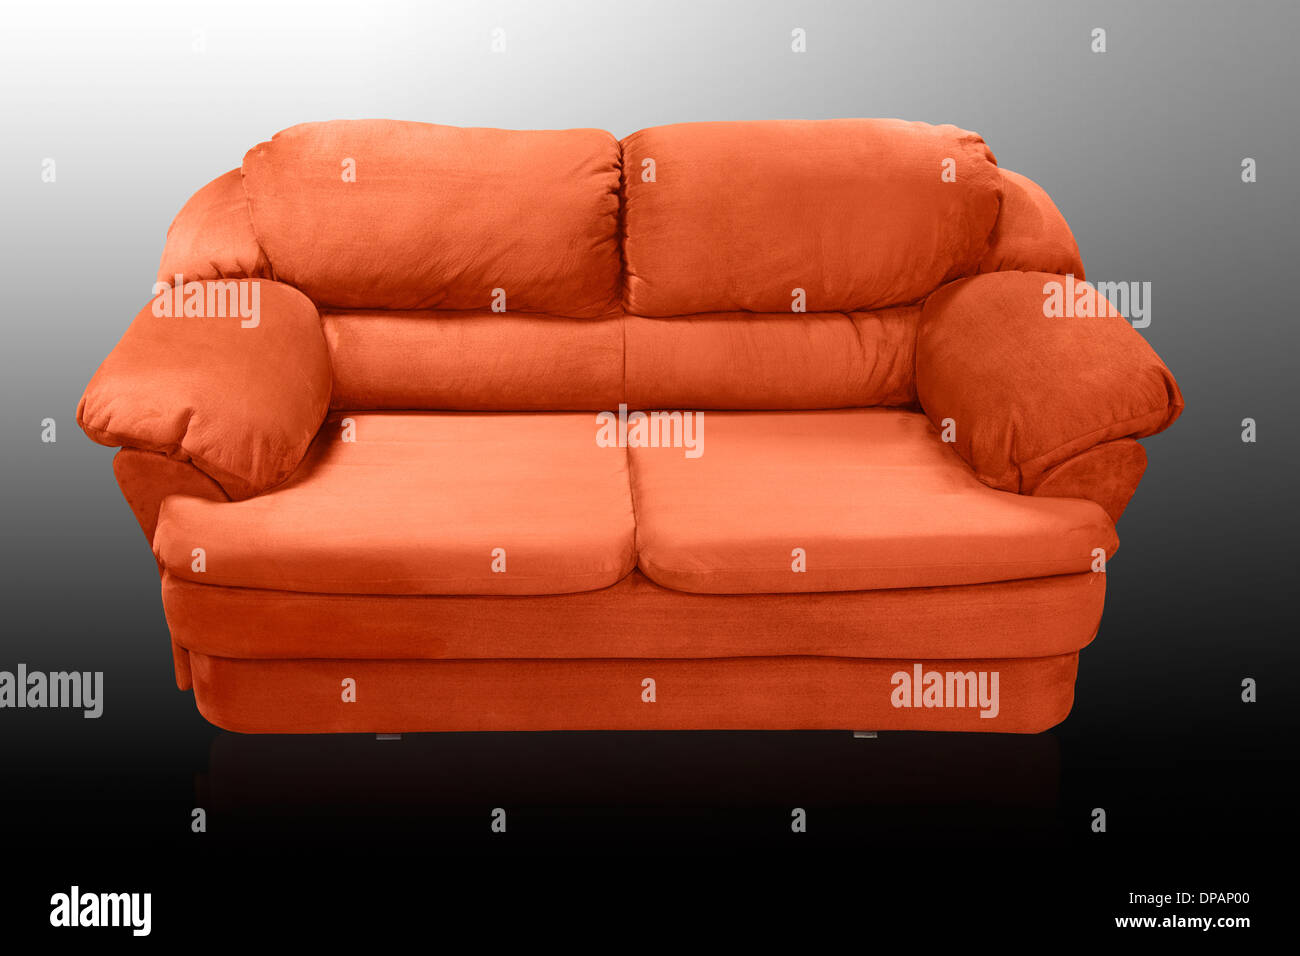 Isolated red sofa on white background. Red couch proper for furniture design. - Stock Image